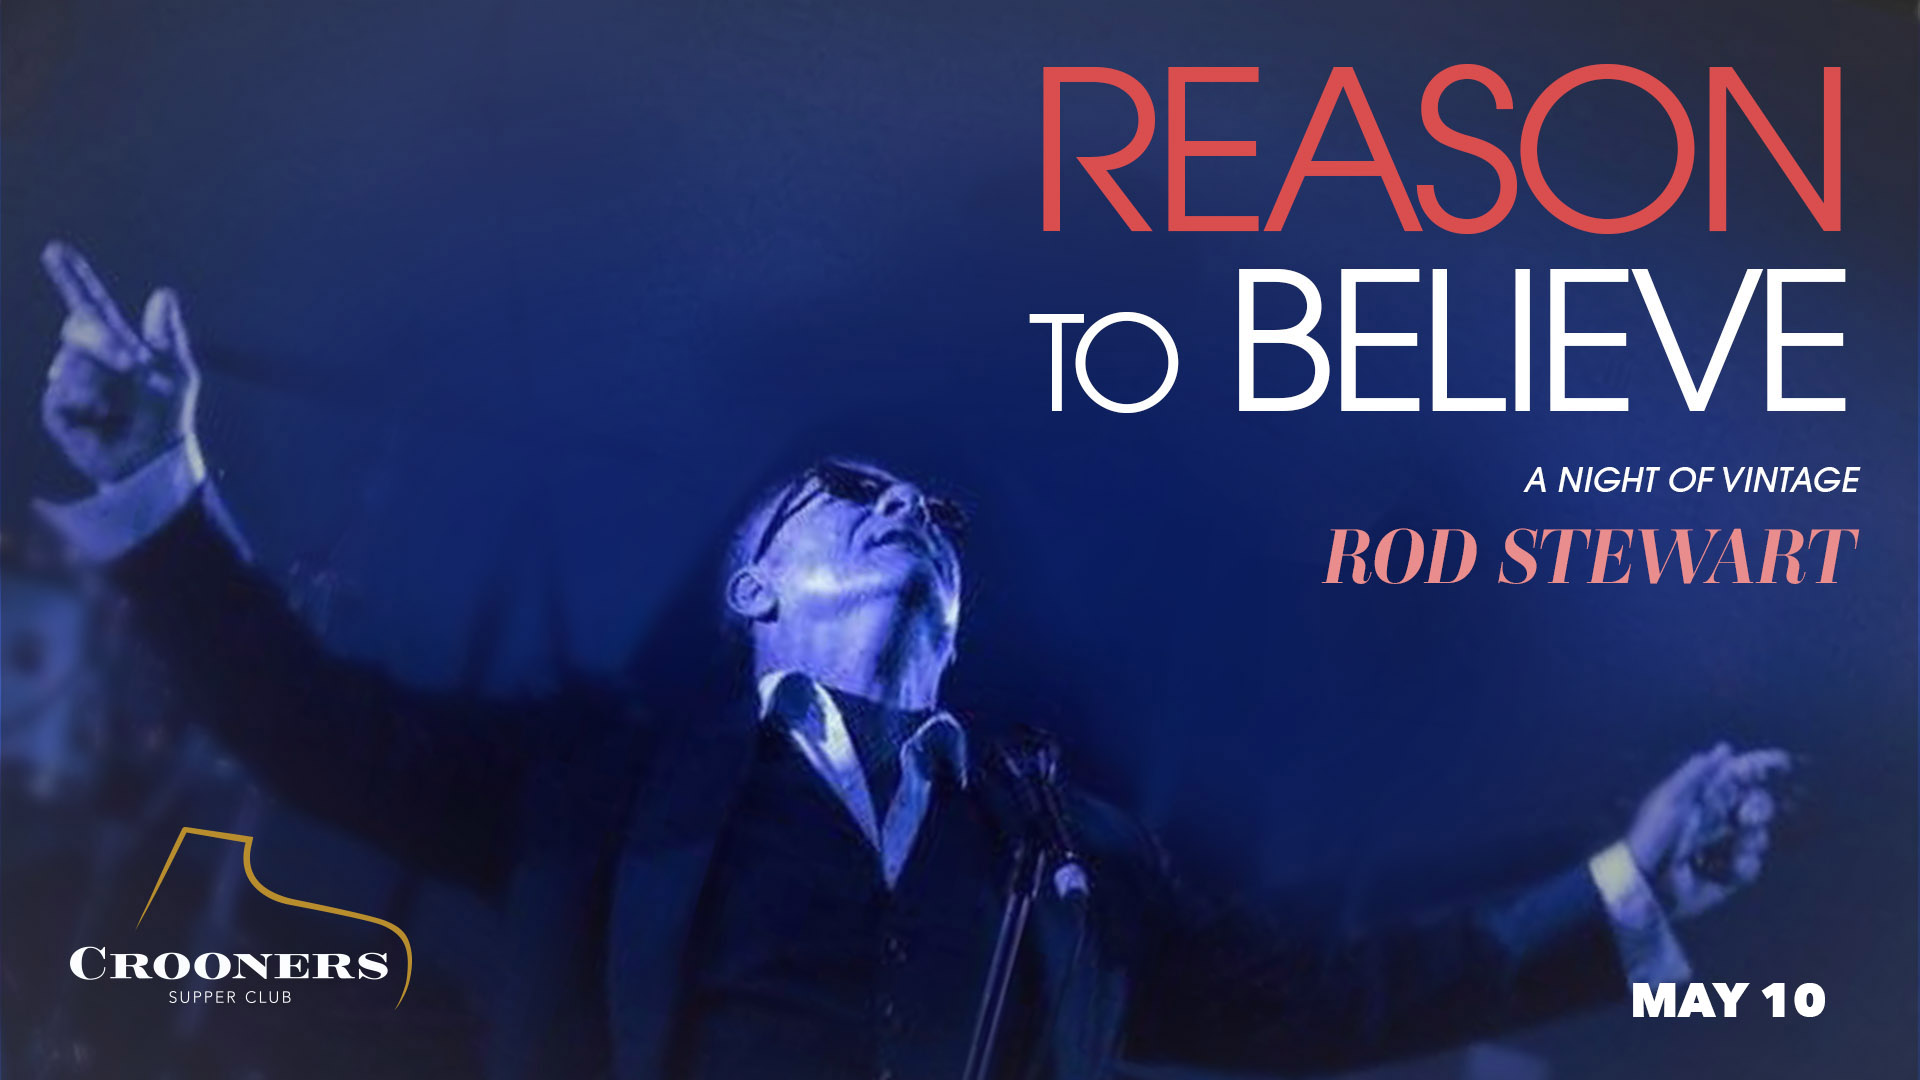 Reason to Believe - Mick Sterling Presents A Night of Vintage Rod Stewart